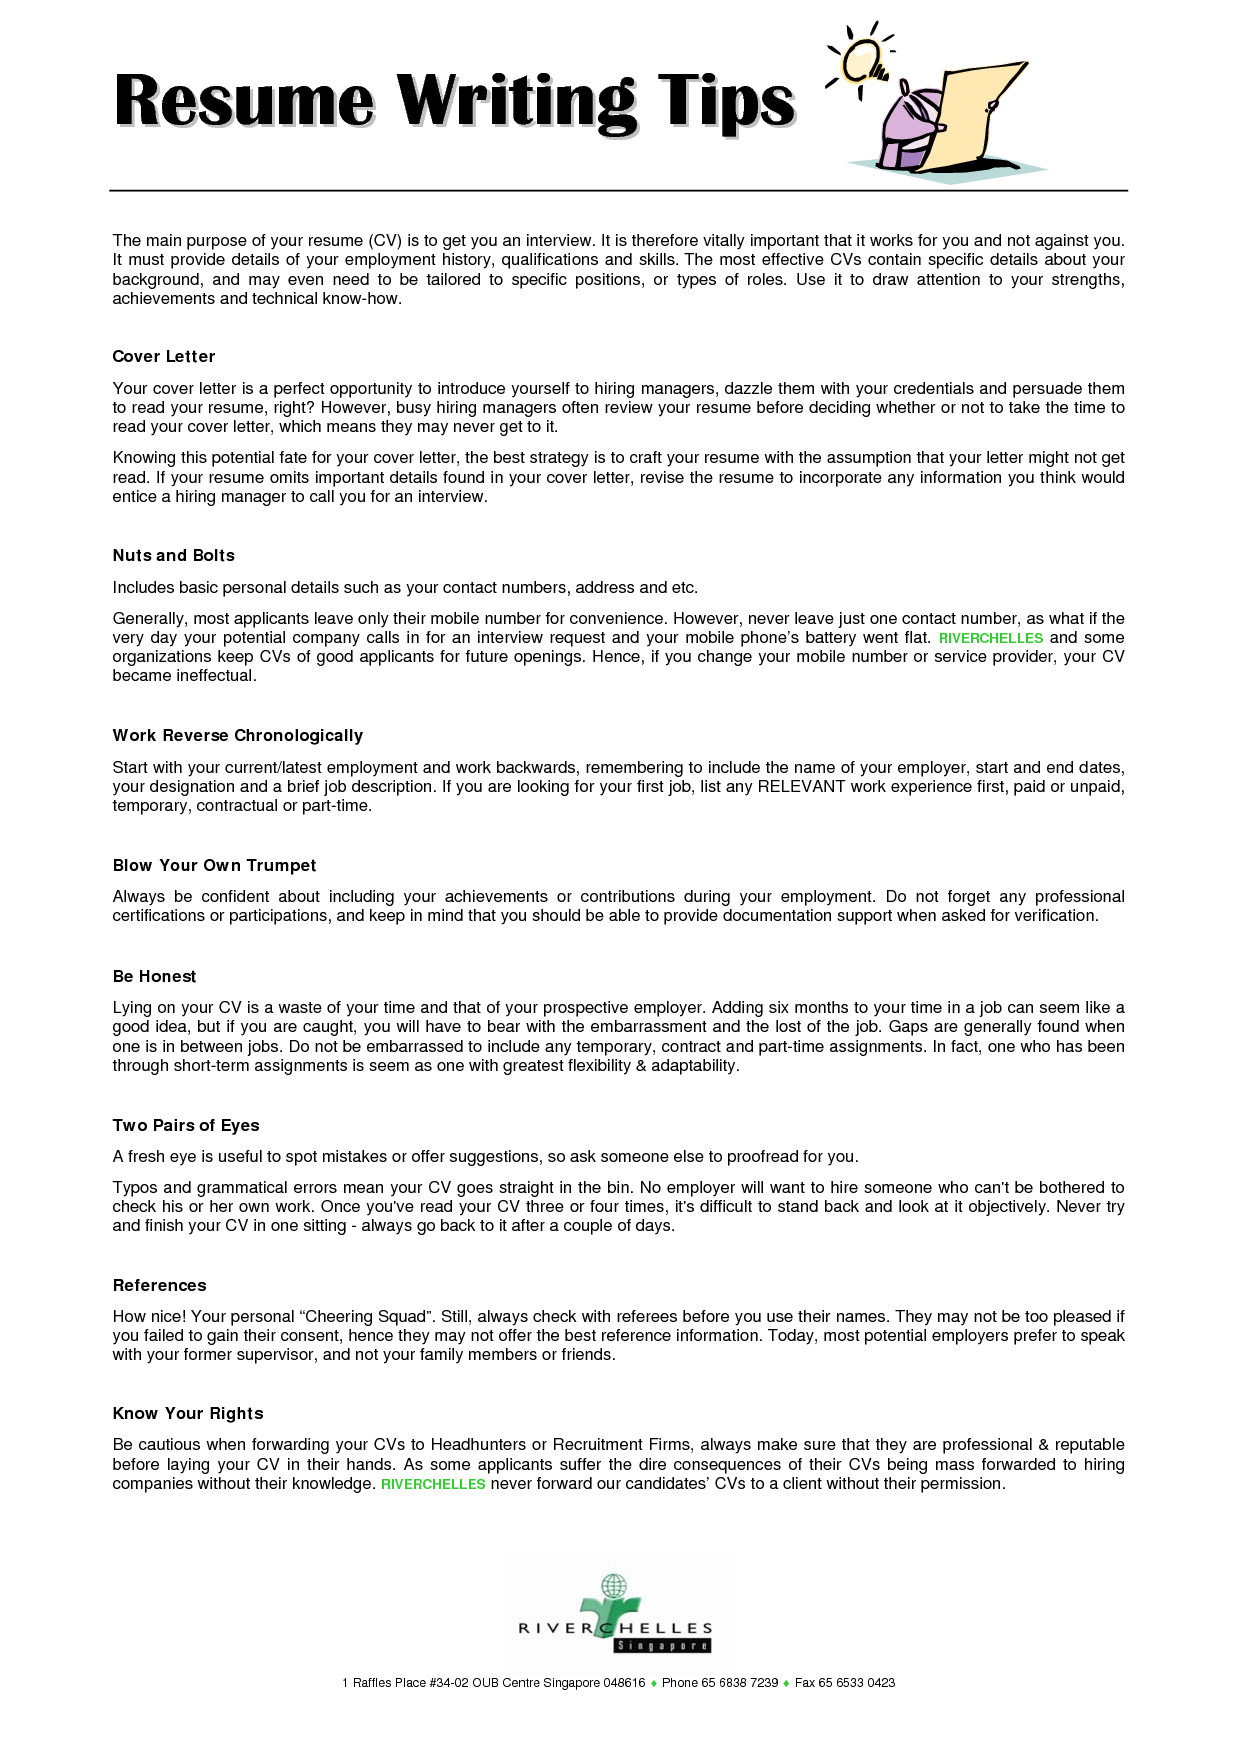 Resume Writing Tips  Best Resume Advice